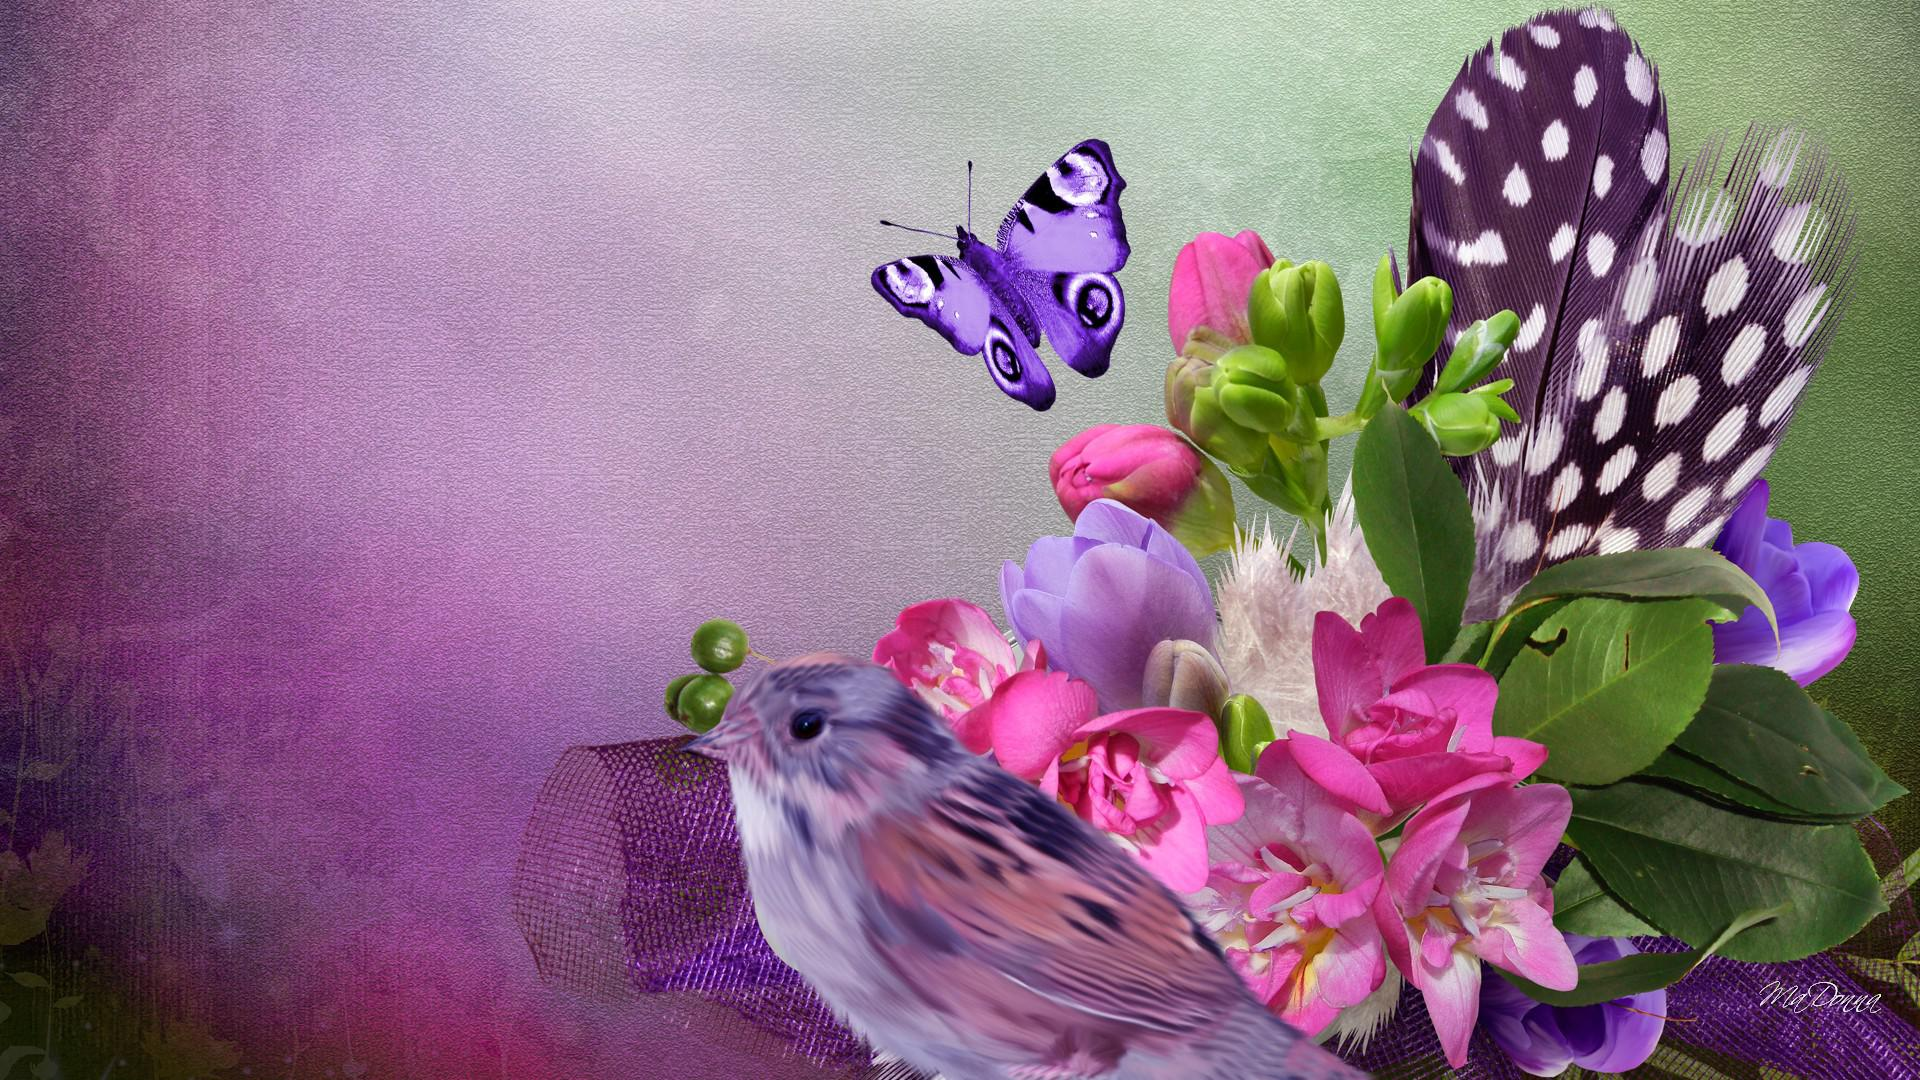 Bird butterfly blossoms - (#99229) - High Quality and Resolution ...